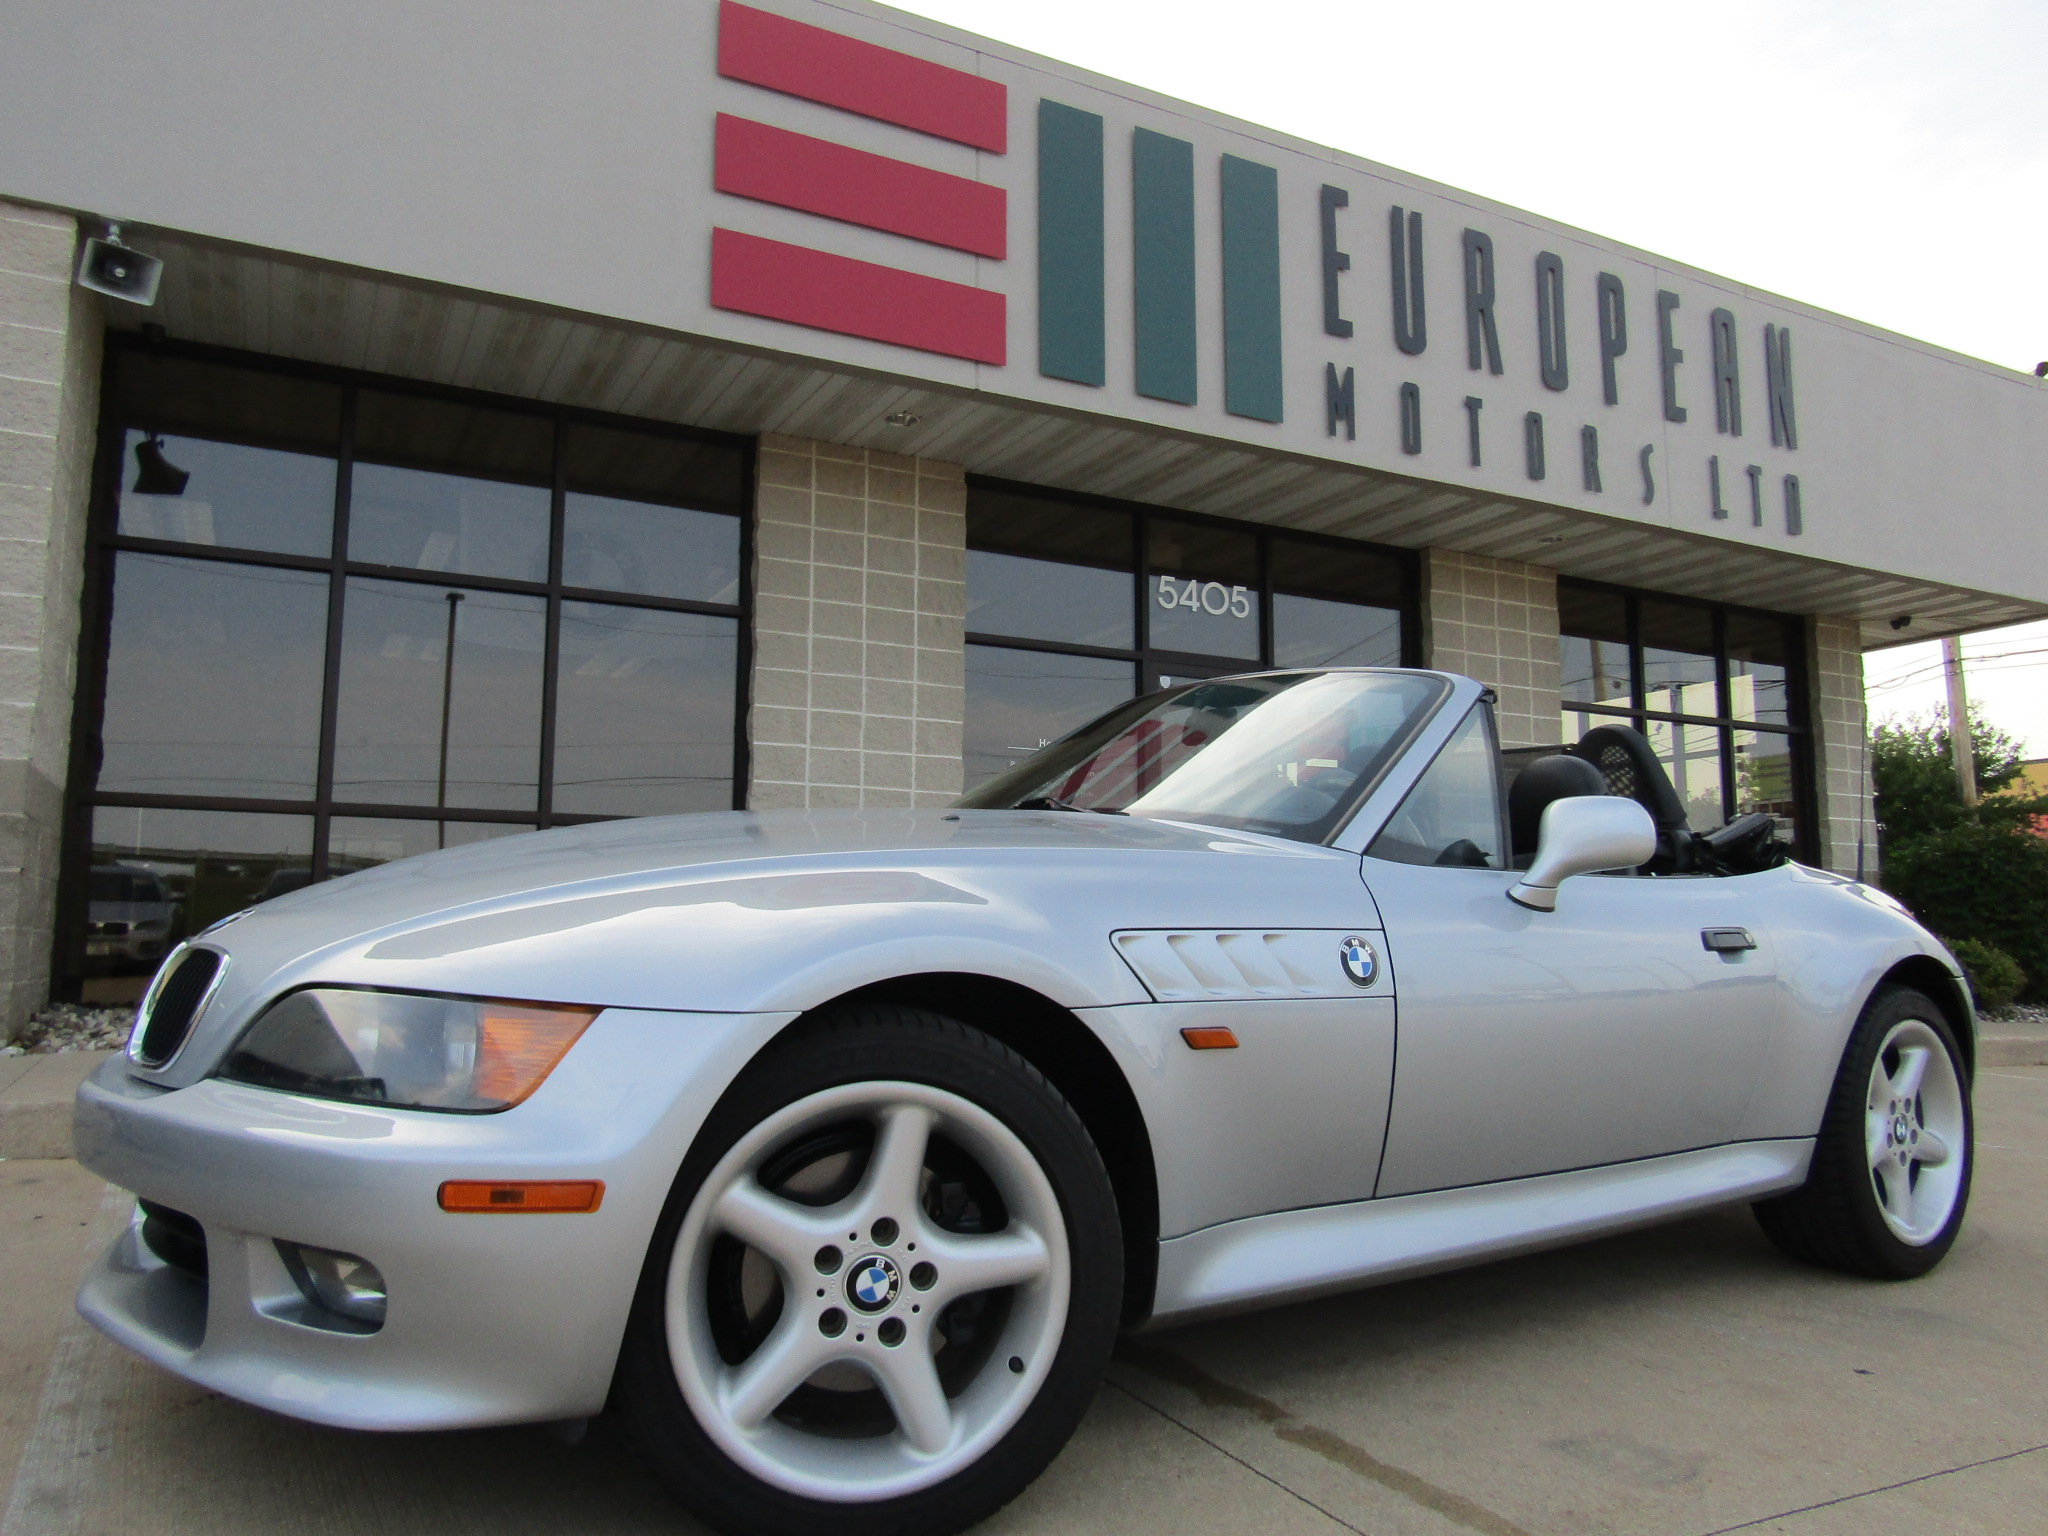 1998 BMW Z3 2.8 Convertible Roadster. Low Miles, 5-Speed Manual